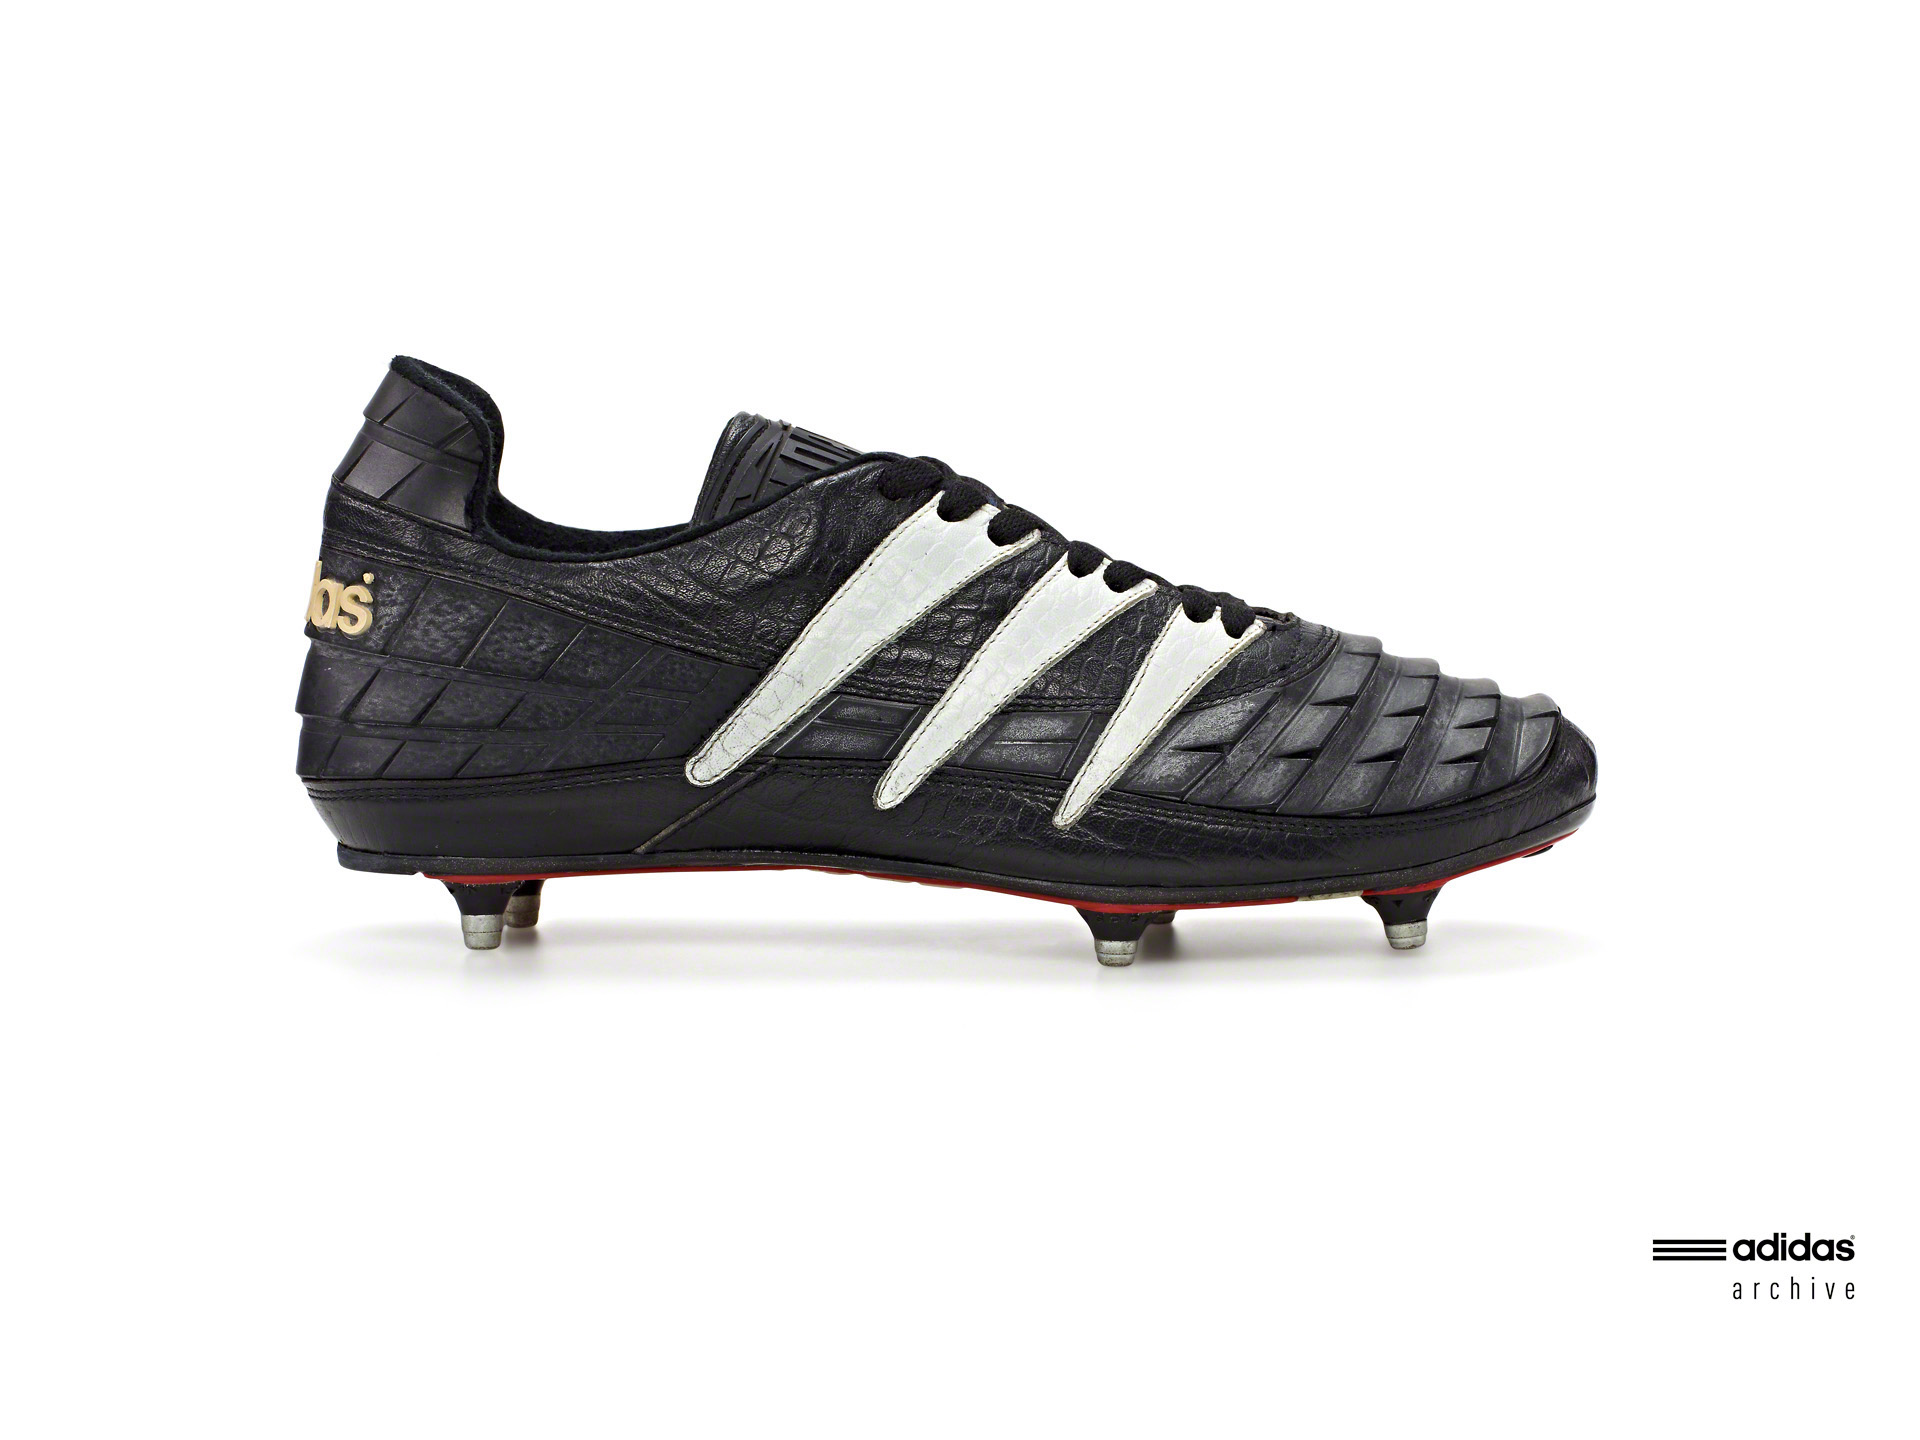 Adidas Predator: Every edition of the world famous boot